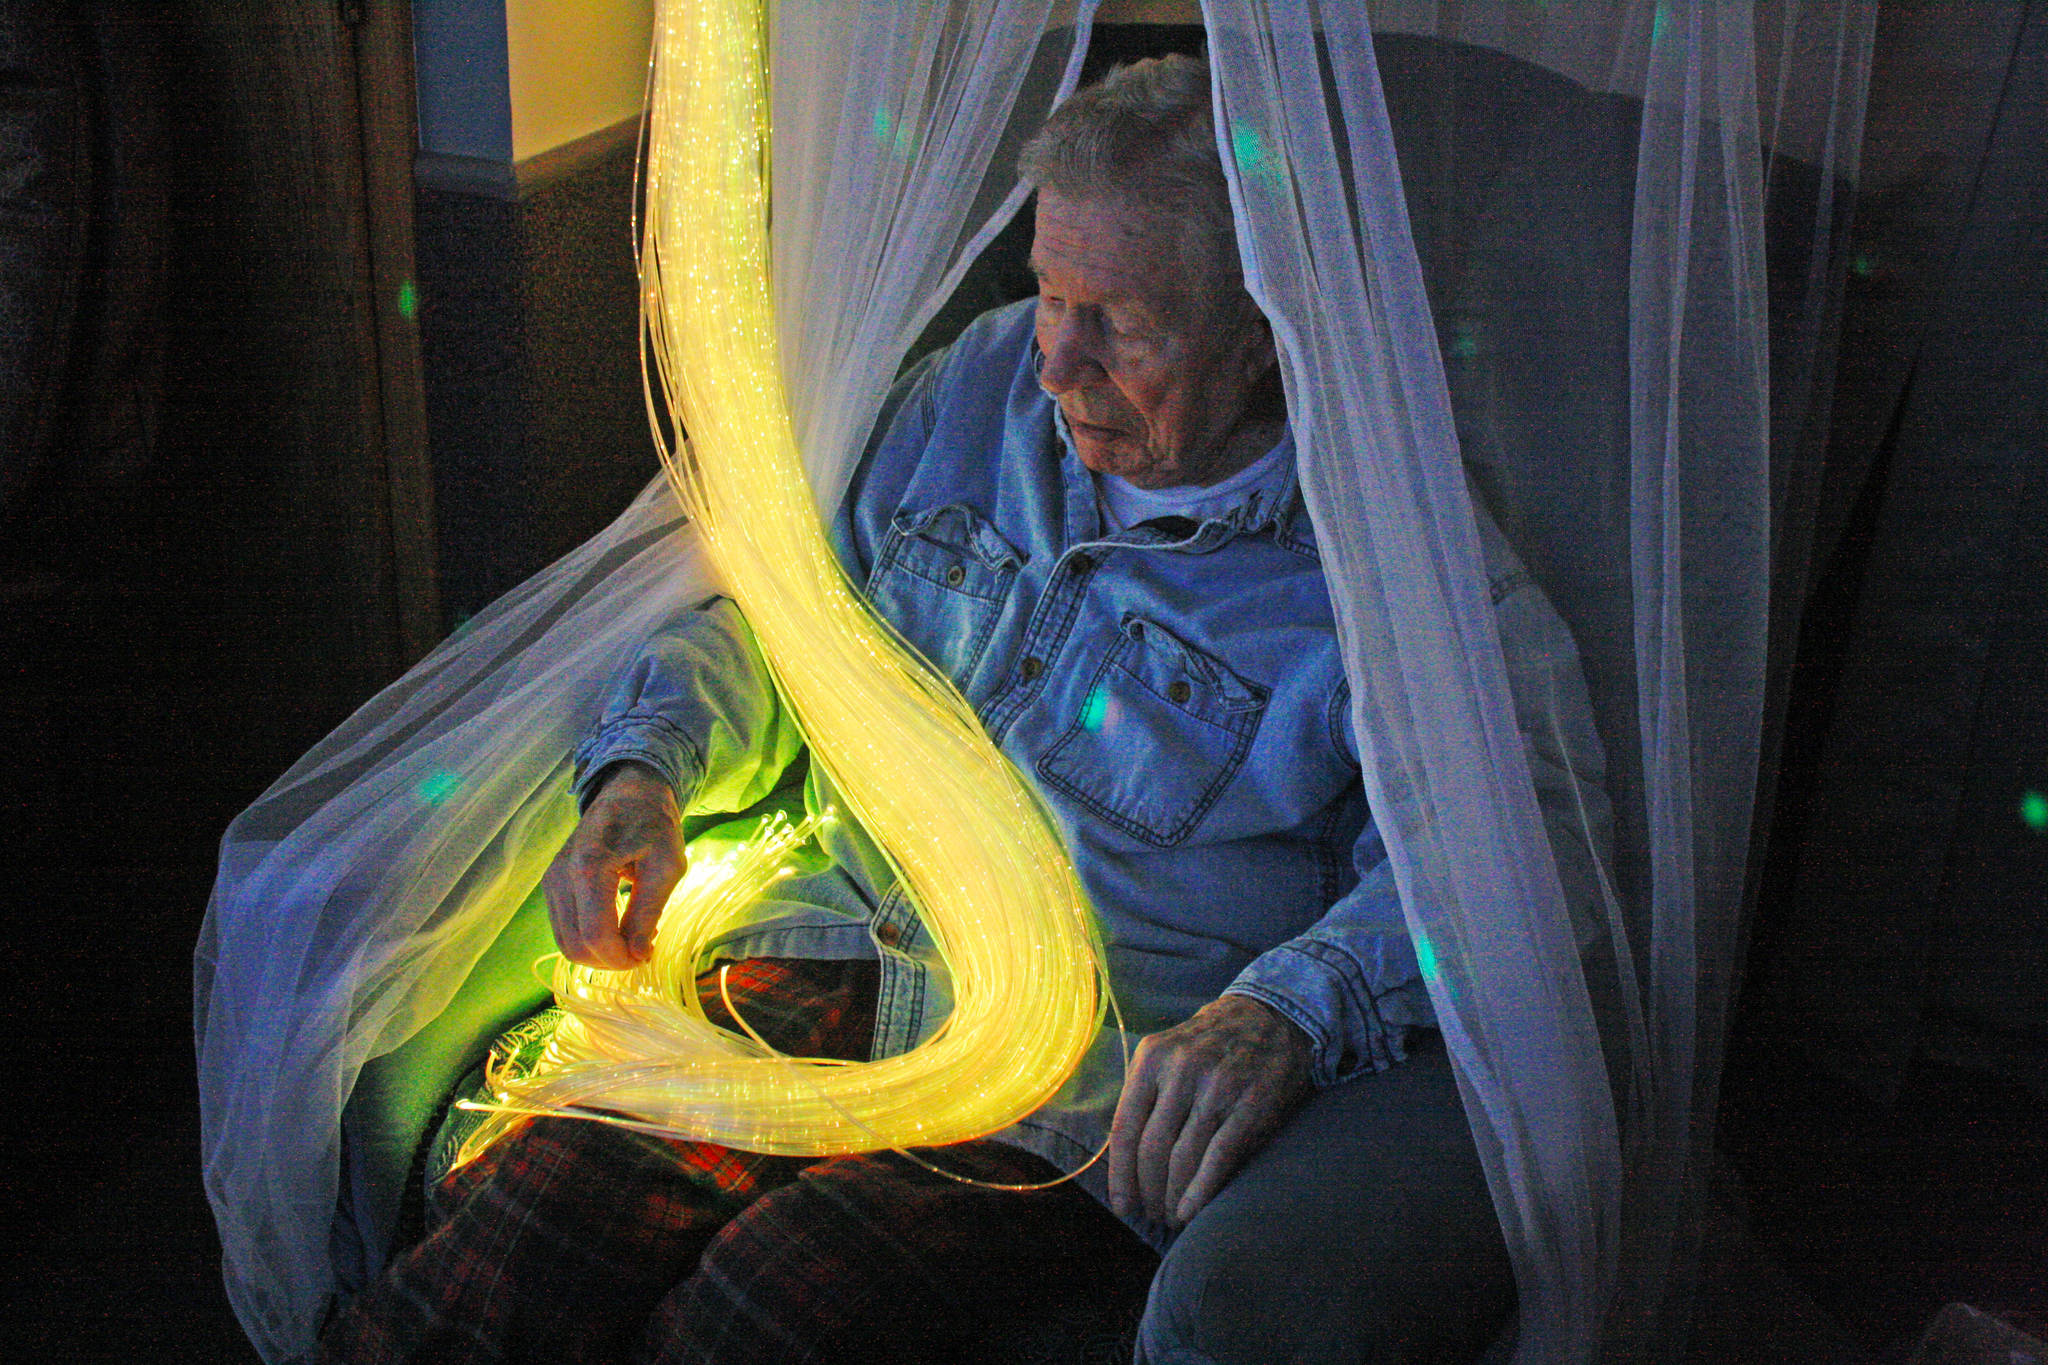 A resident at Heritage Place enjoys colored strands of light during an open house of the home's Snoezelen room on Friday, March 23 in Soldotna. (Photo by Erin Thompson/Peninsula Clarion)